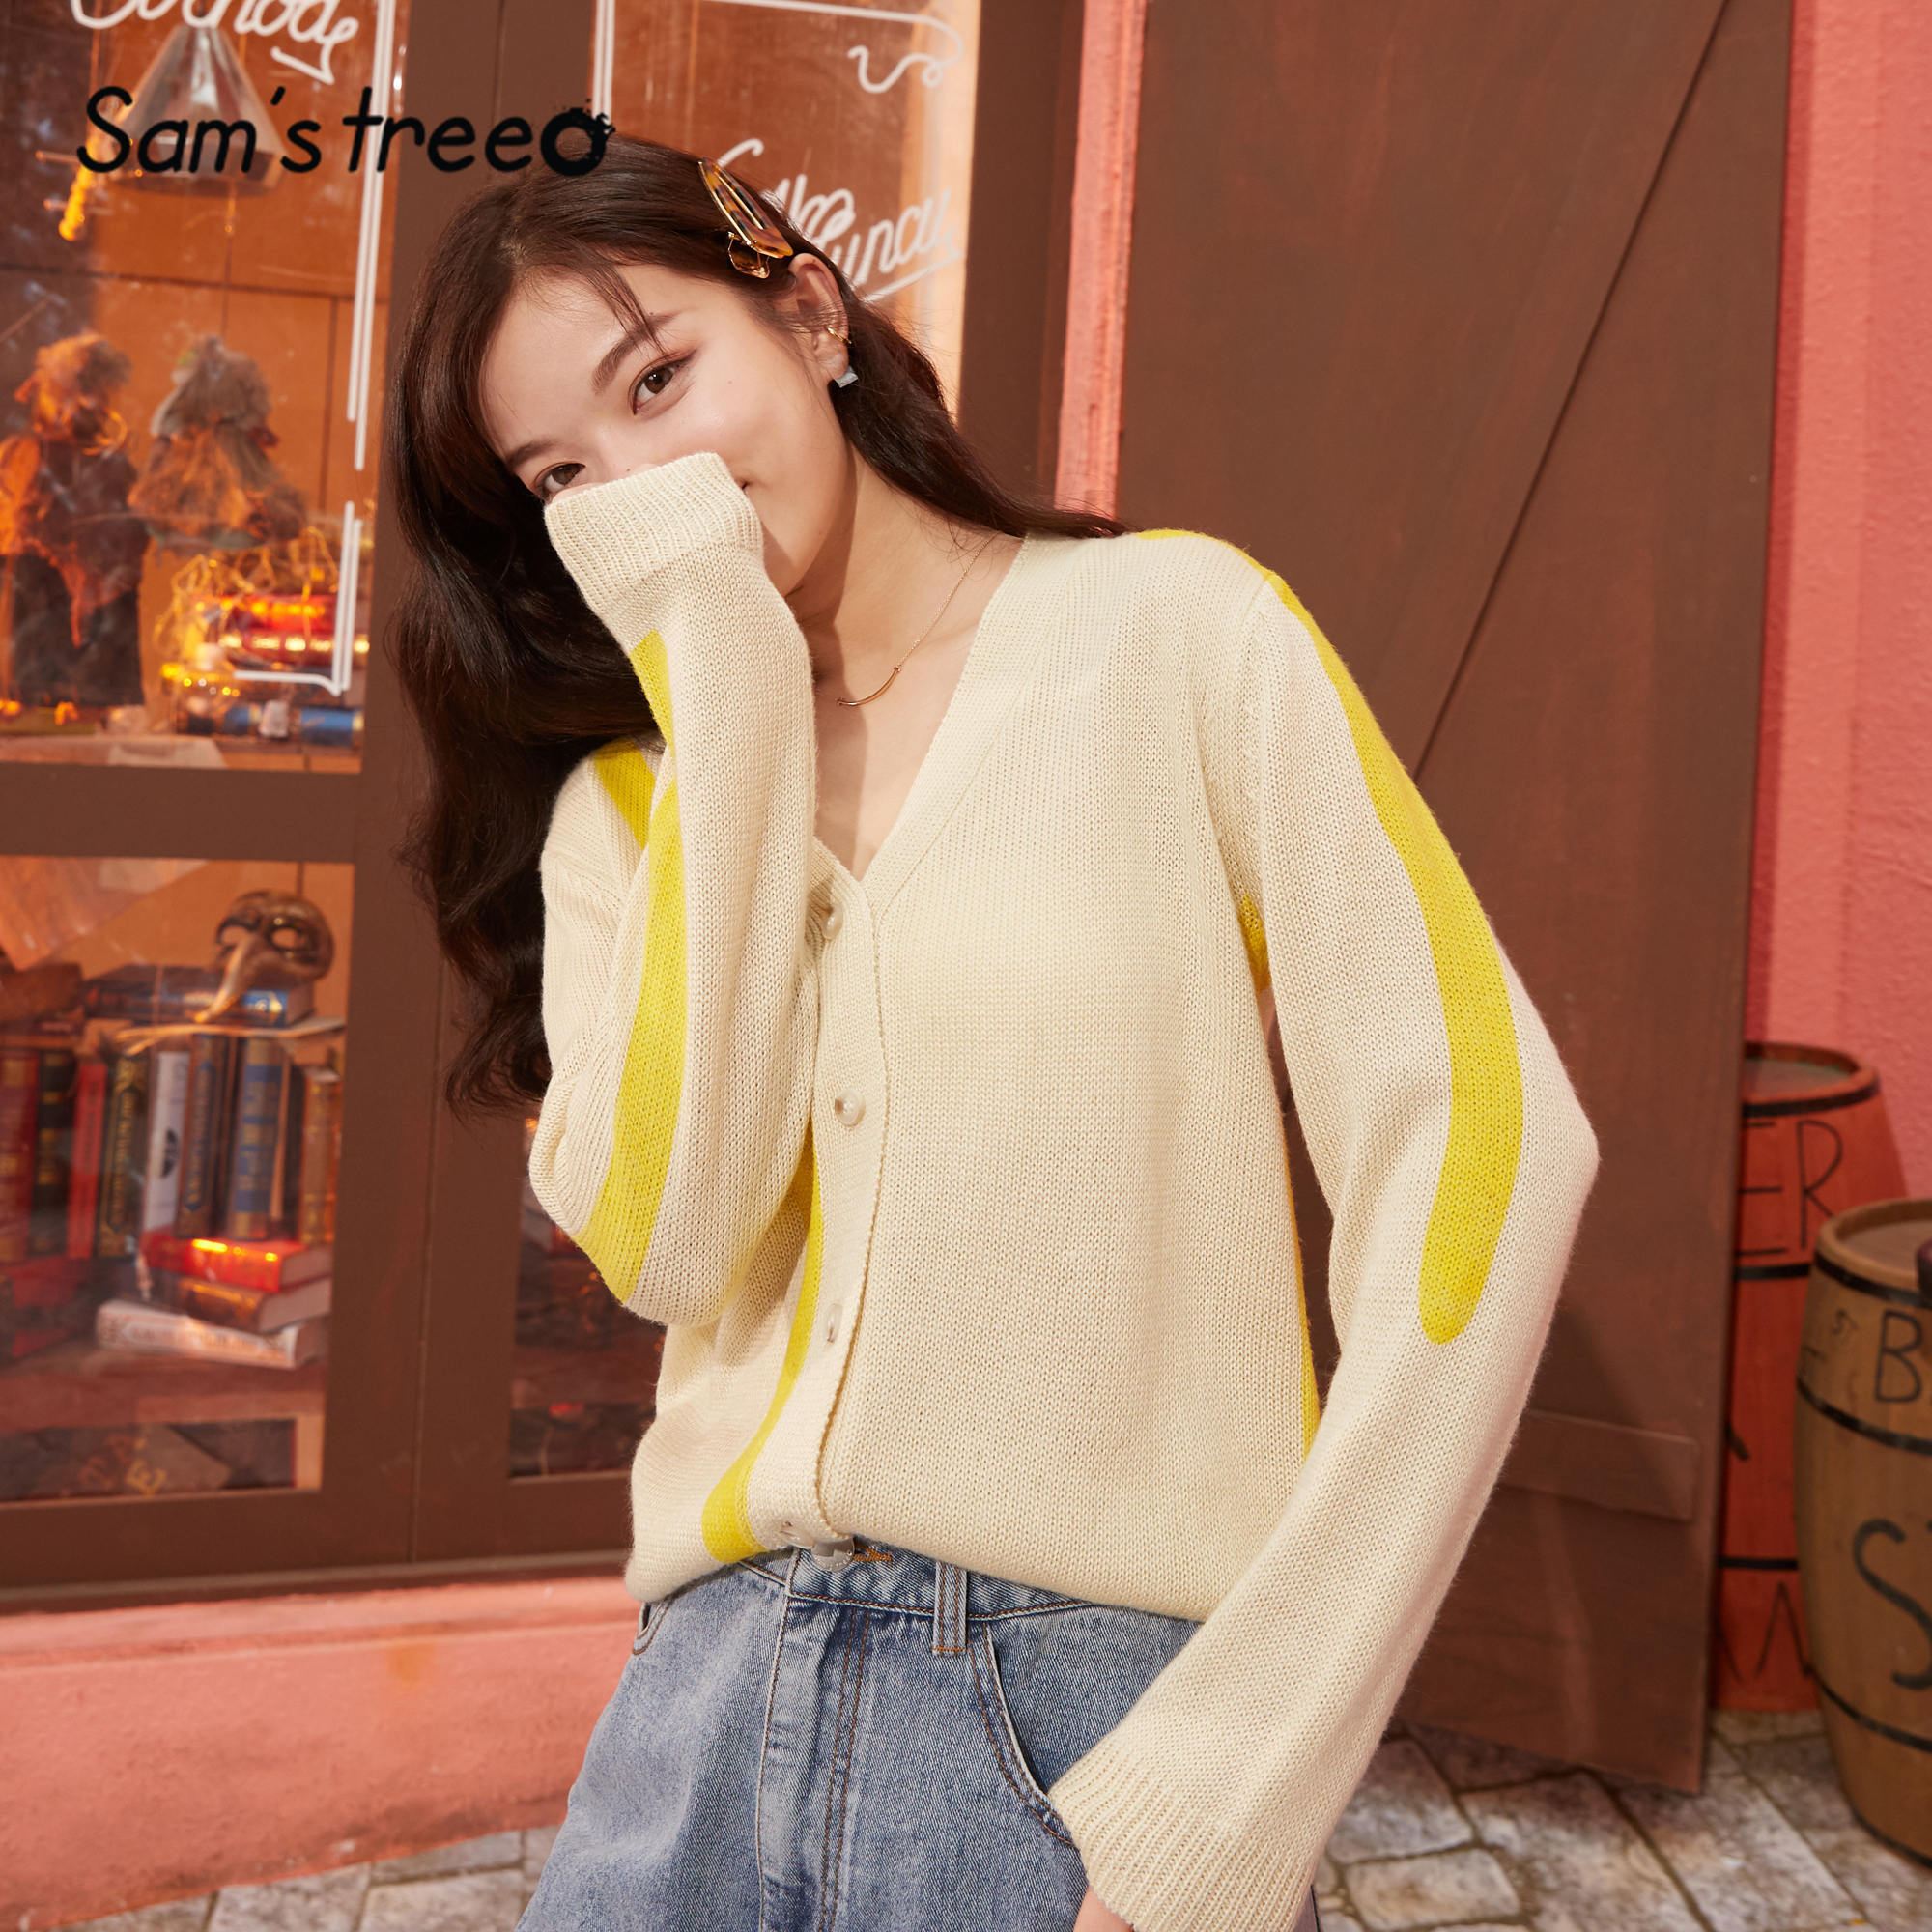 SAM'S TREE Apricot Solid Single Breasted Knit Women Cardigan Sweaters 2020 Spring Colorblock Long Sleeve Korean Girly Daily Tops